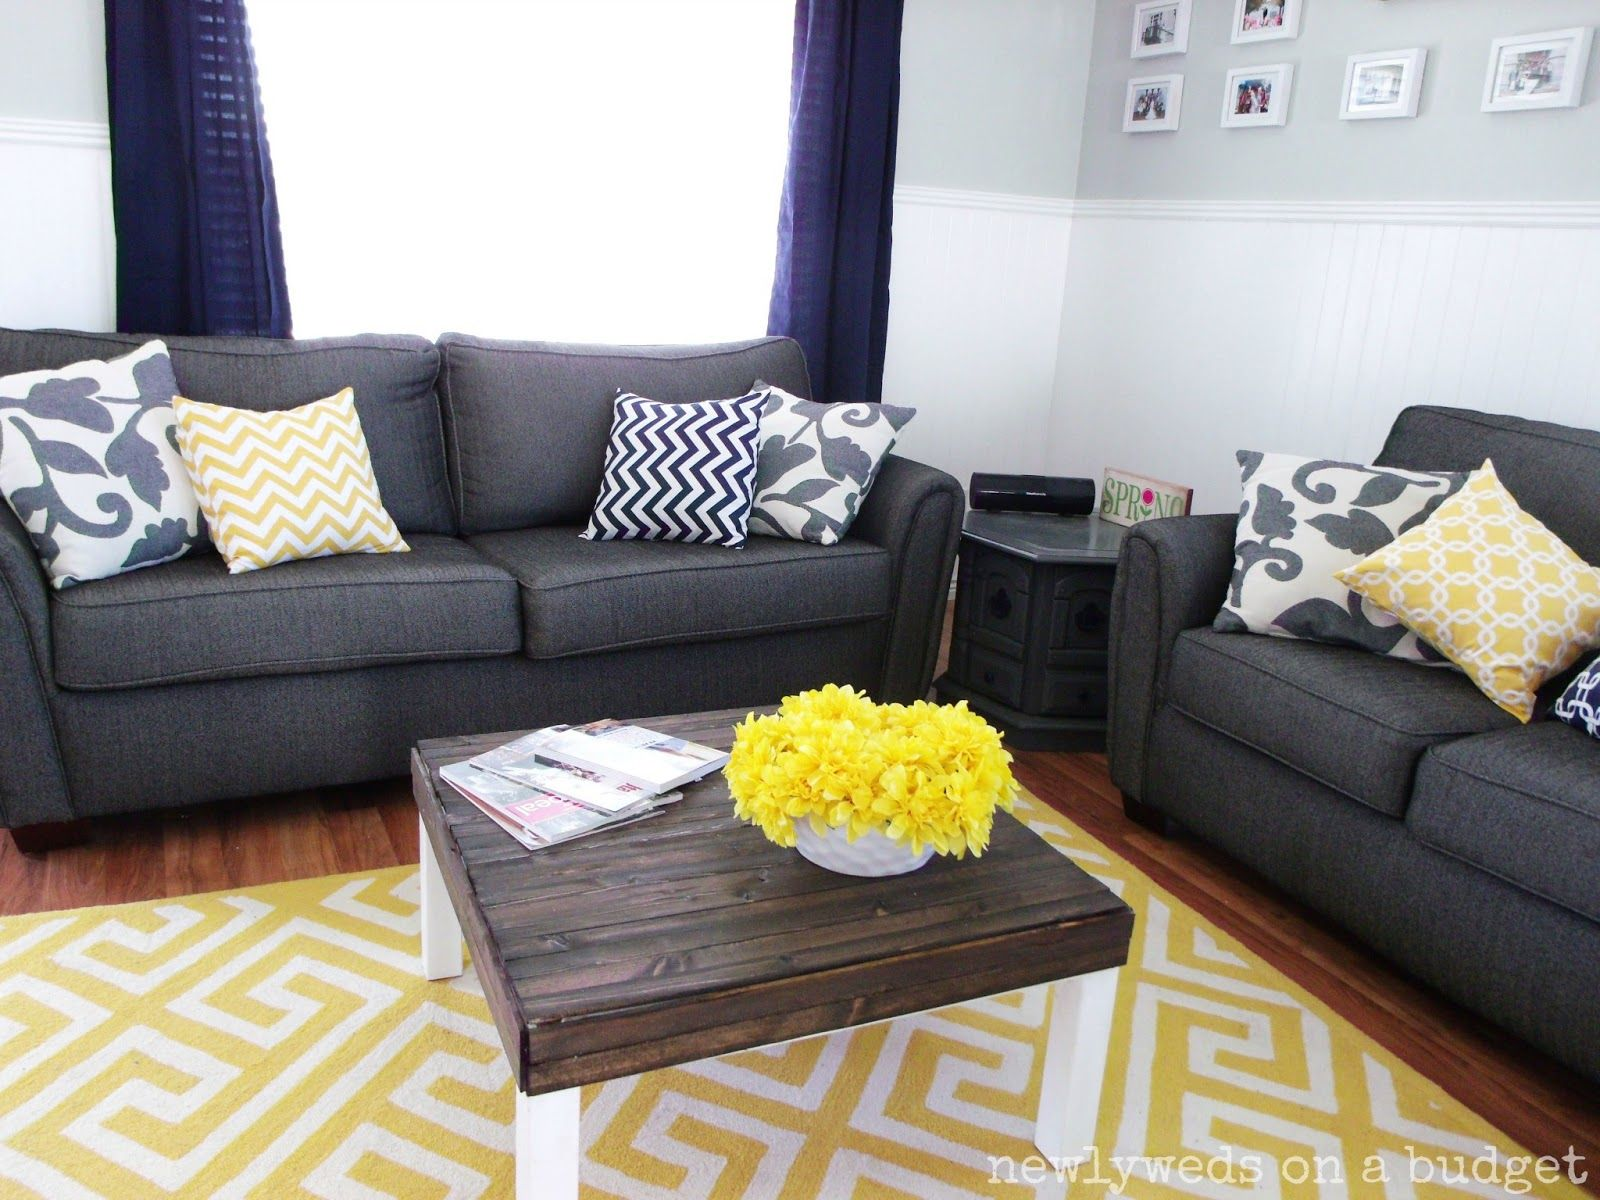 Blue and yellow living room with brown couch - Navy Blue Rooms Ideas Navy Blue And Yellow Living Room Newlyweds On A Budget Living